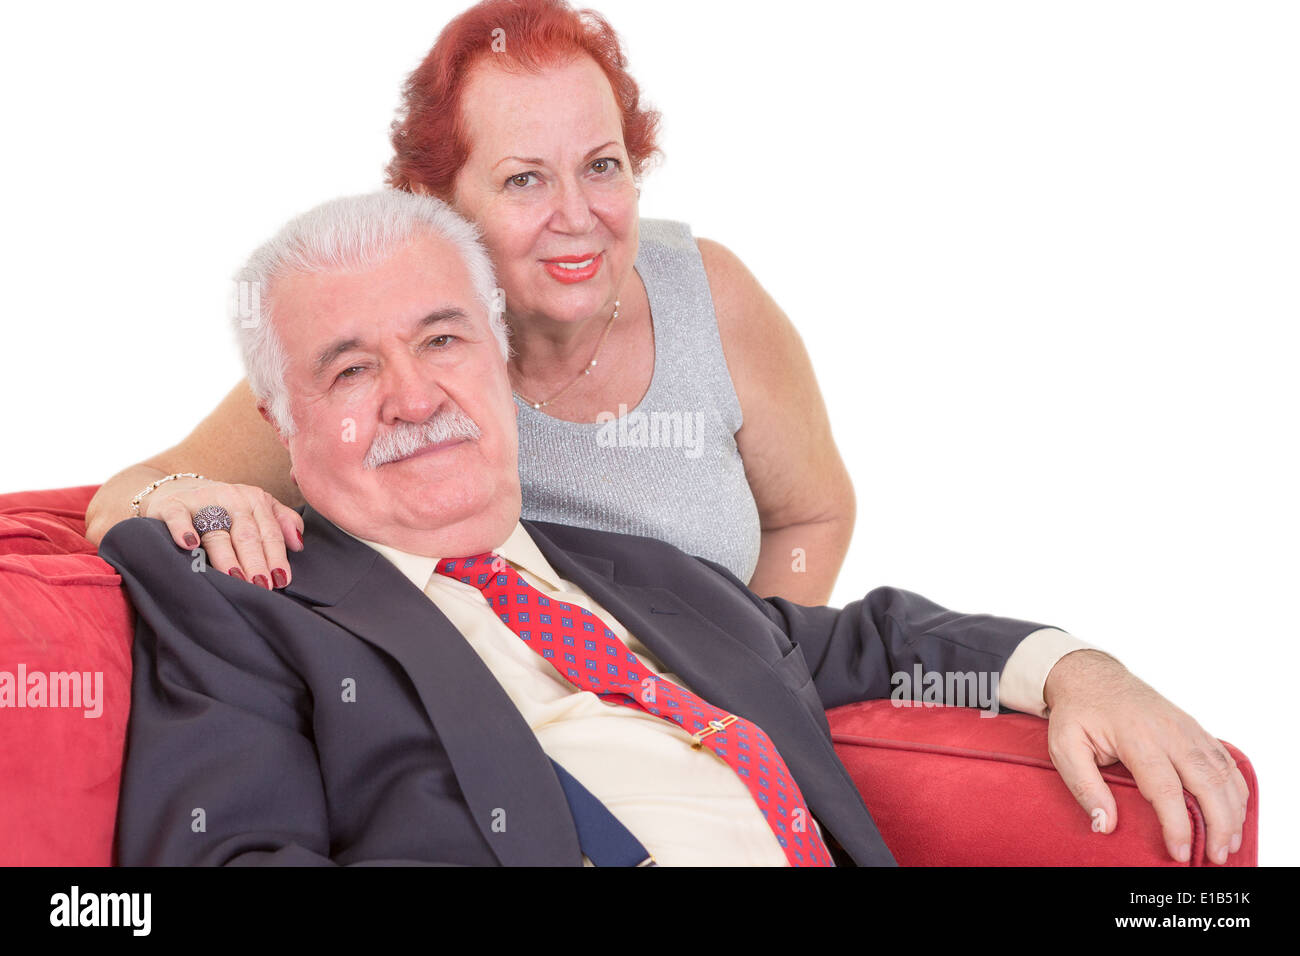 Loving elderly couple relaxing together on a red couch with the wife sitting behind her husband with her arm around his shoulder - Stock Image